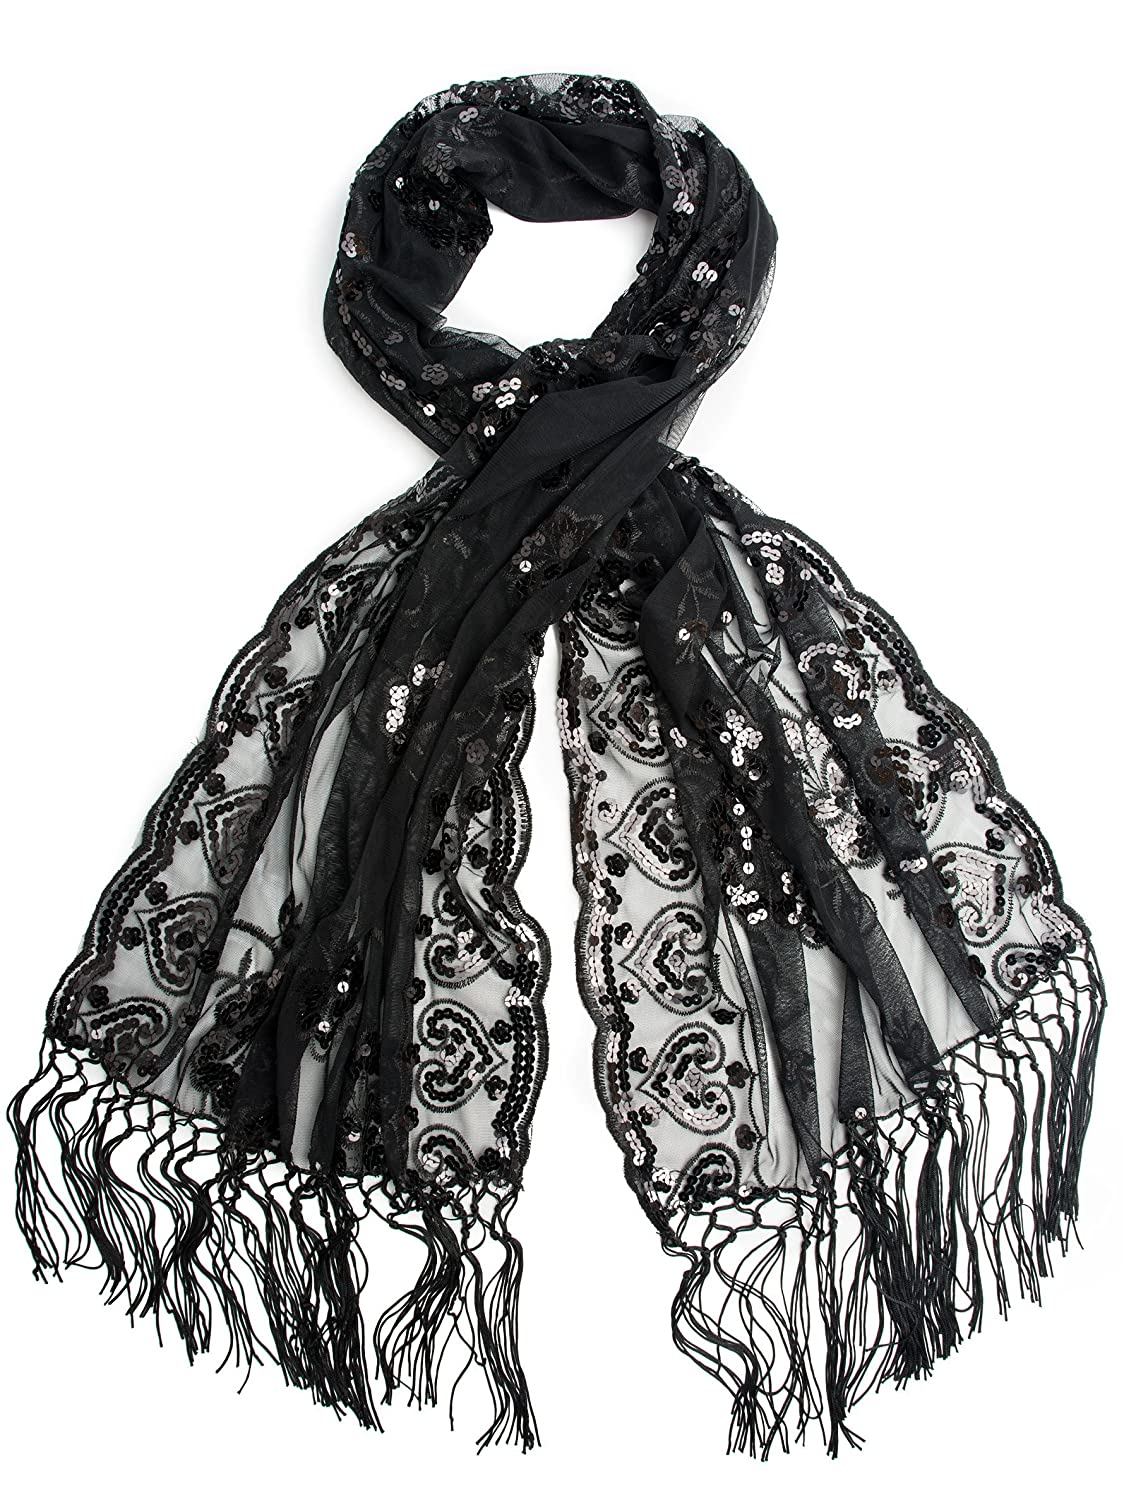 Vintage Scarves- New in the 1920s to 1960s Styles Black Madison Shawl Long Fringe Sequin Evening Wrap $14.95 AT vintagedancer.com